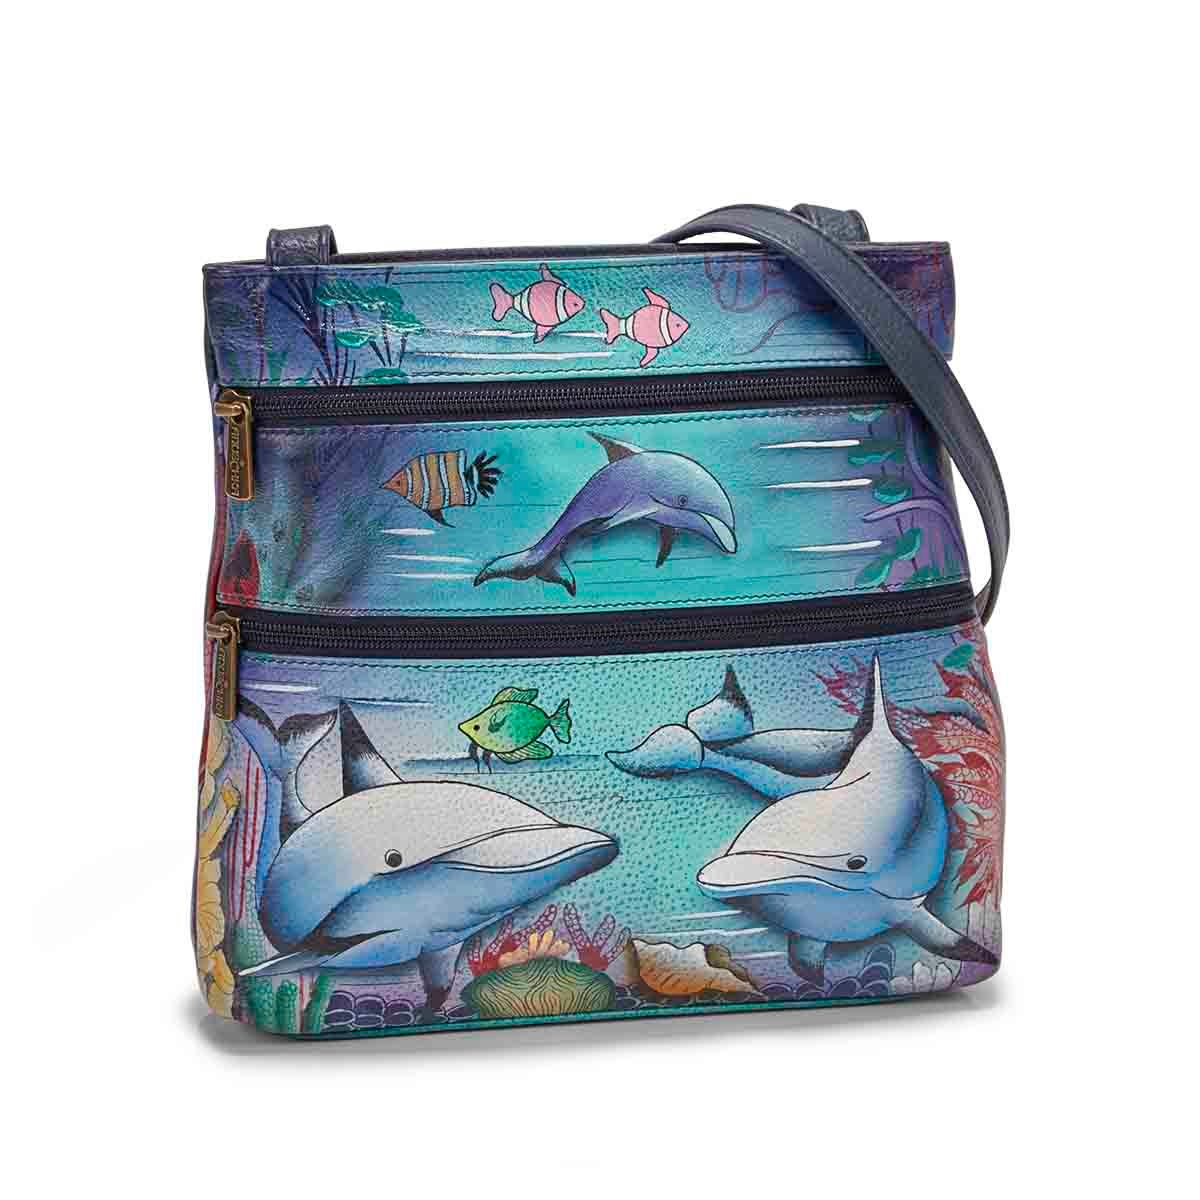 Women's DOLPHIN WORLD crossbody bag